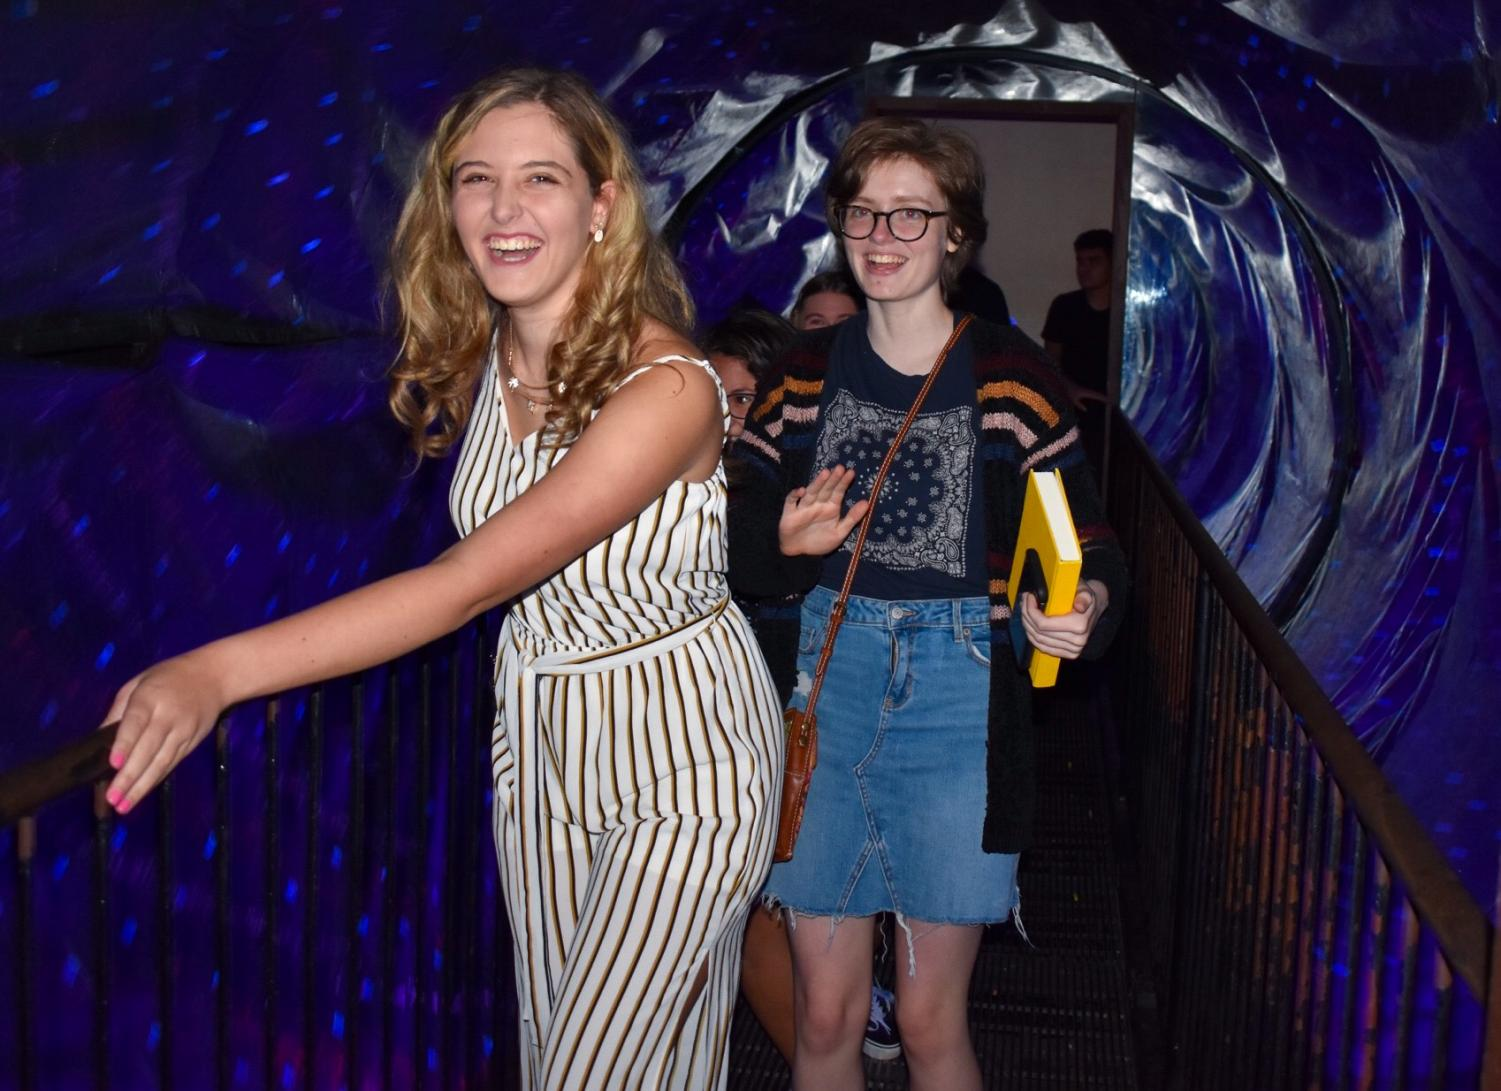 Seniors Ainsley Vetter of Wall and Emily Madeira of Howell walk through a section of Ripley's Believe it or Not museum.